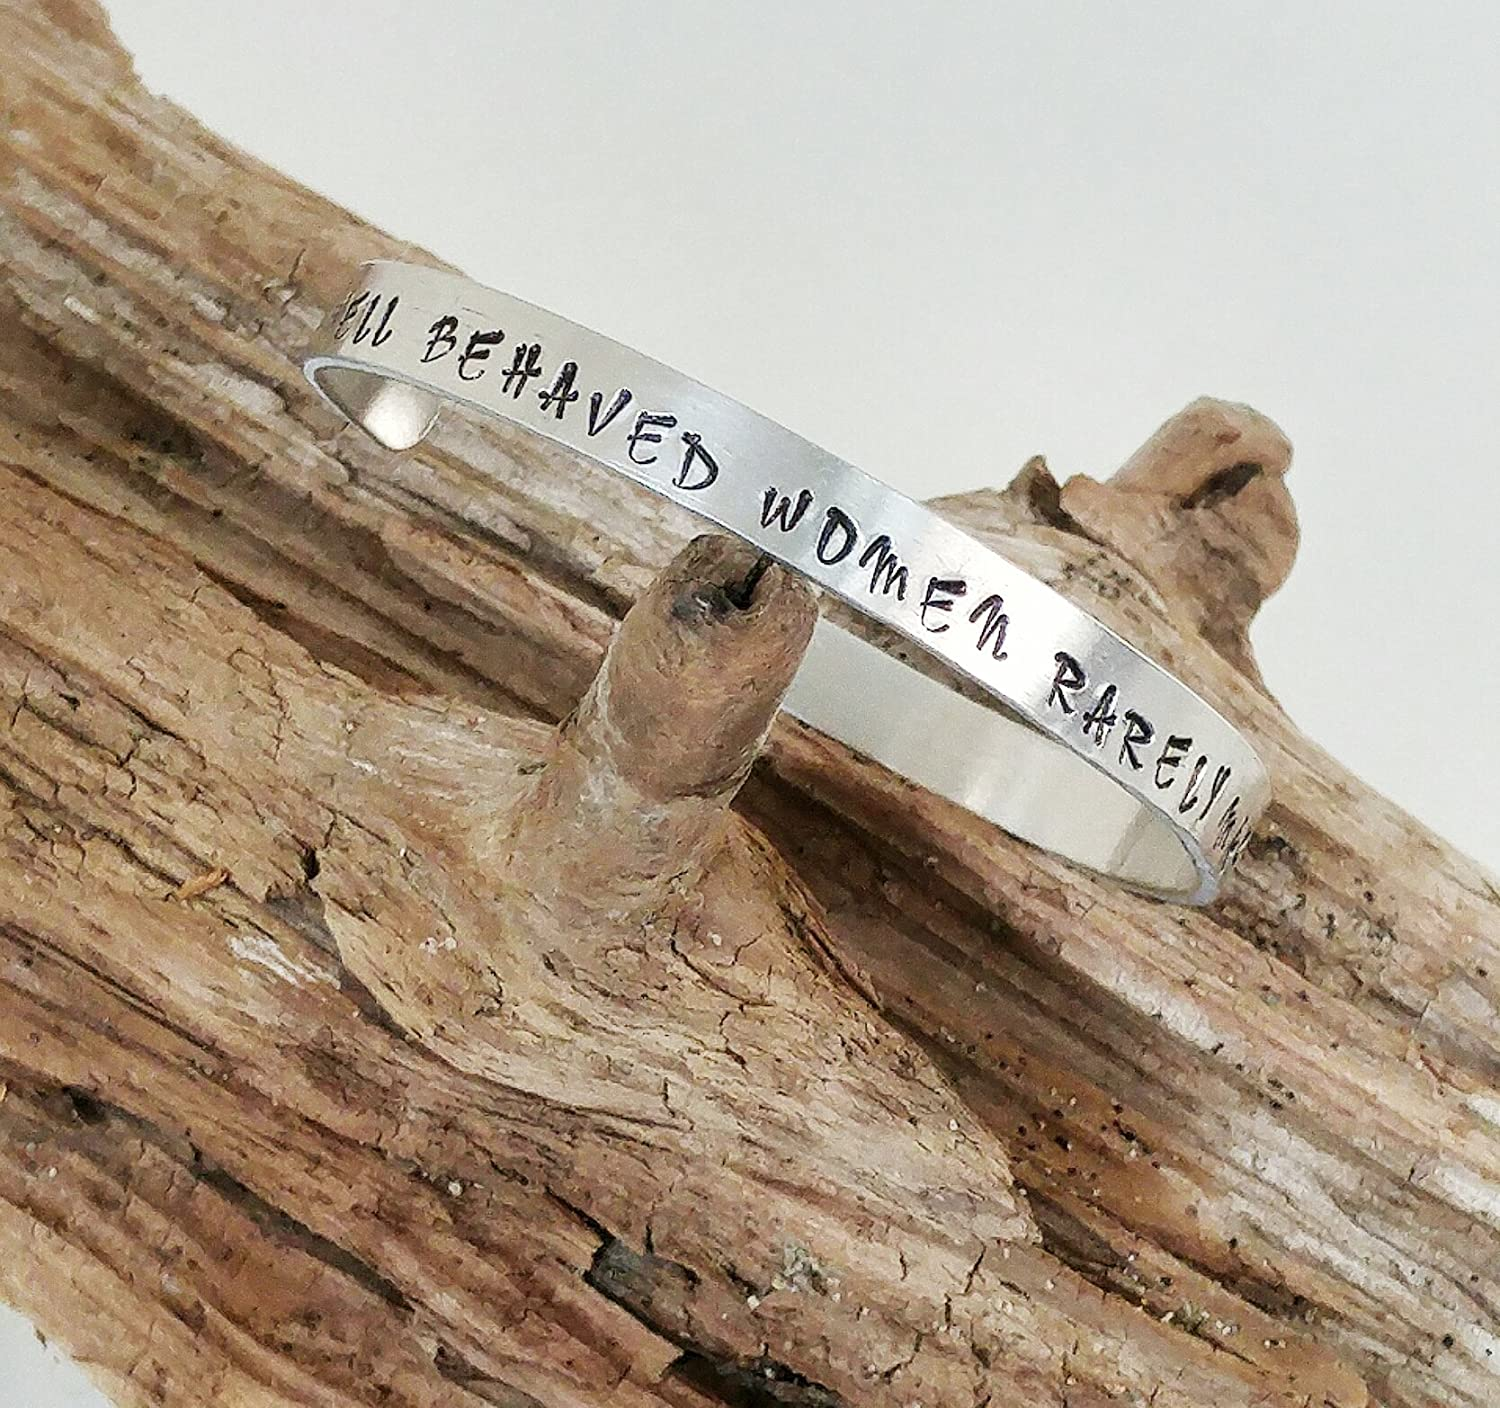 Well Behaved Women Rarely Make History Cuff Brass or Aluminum Bracelet Inspirational Jewelry